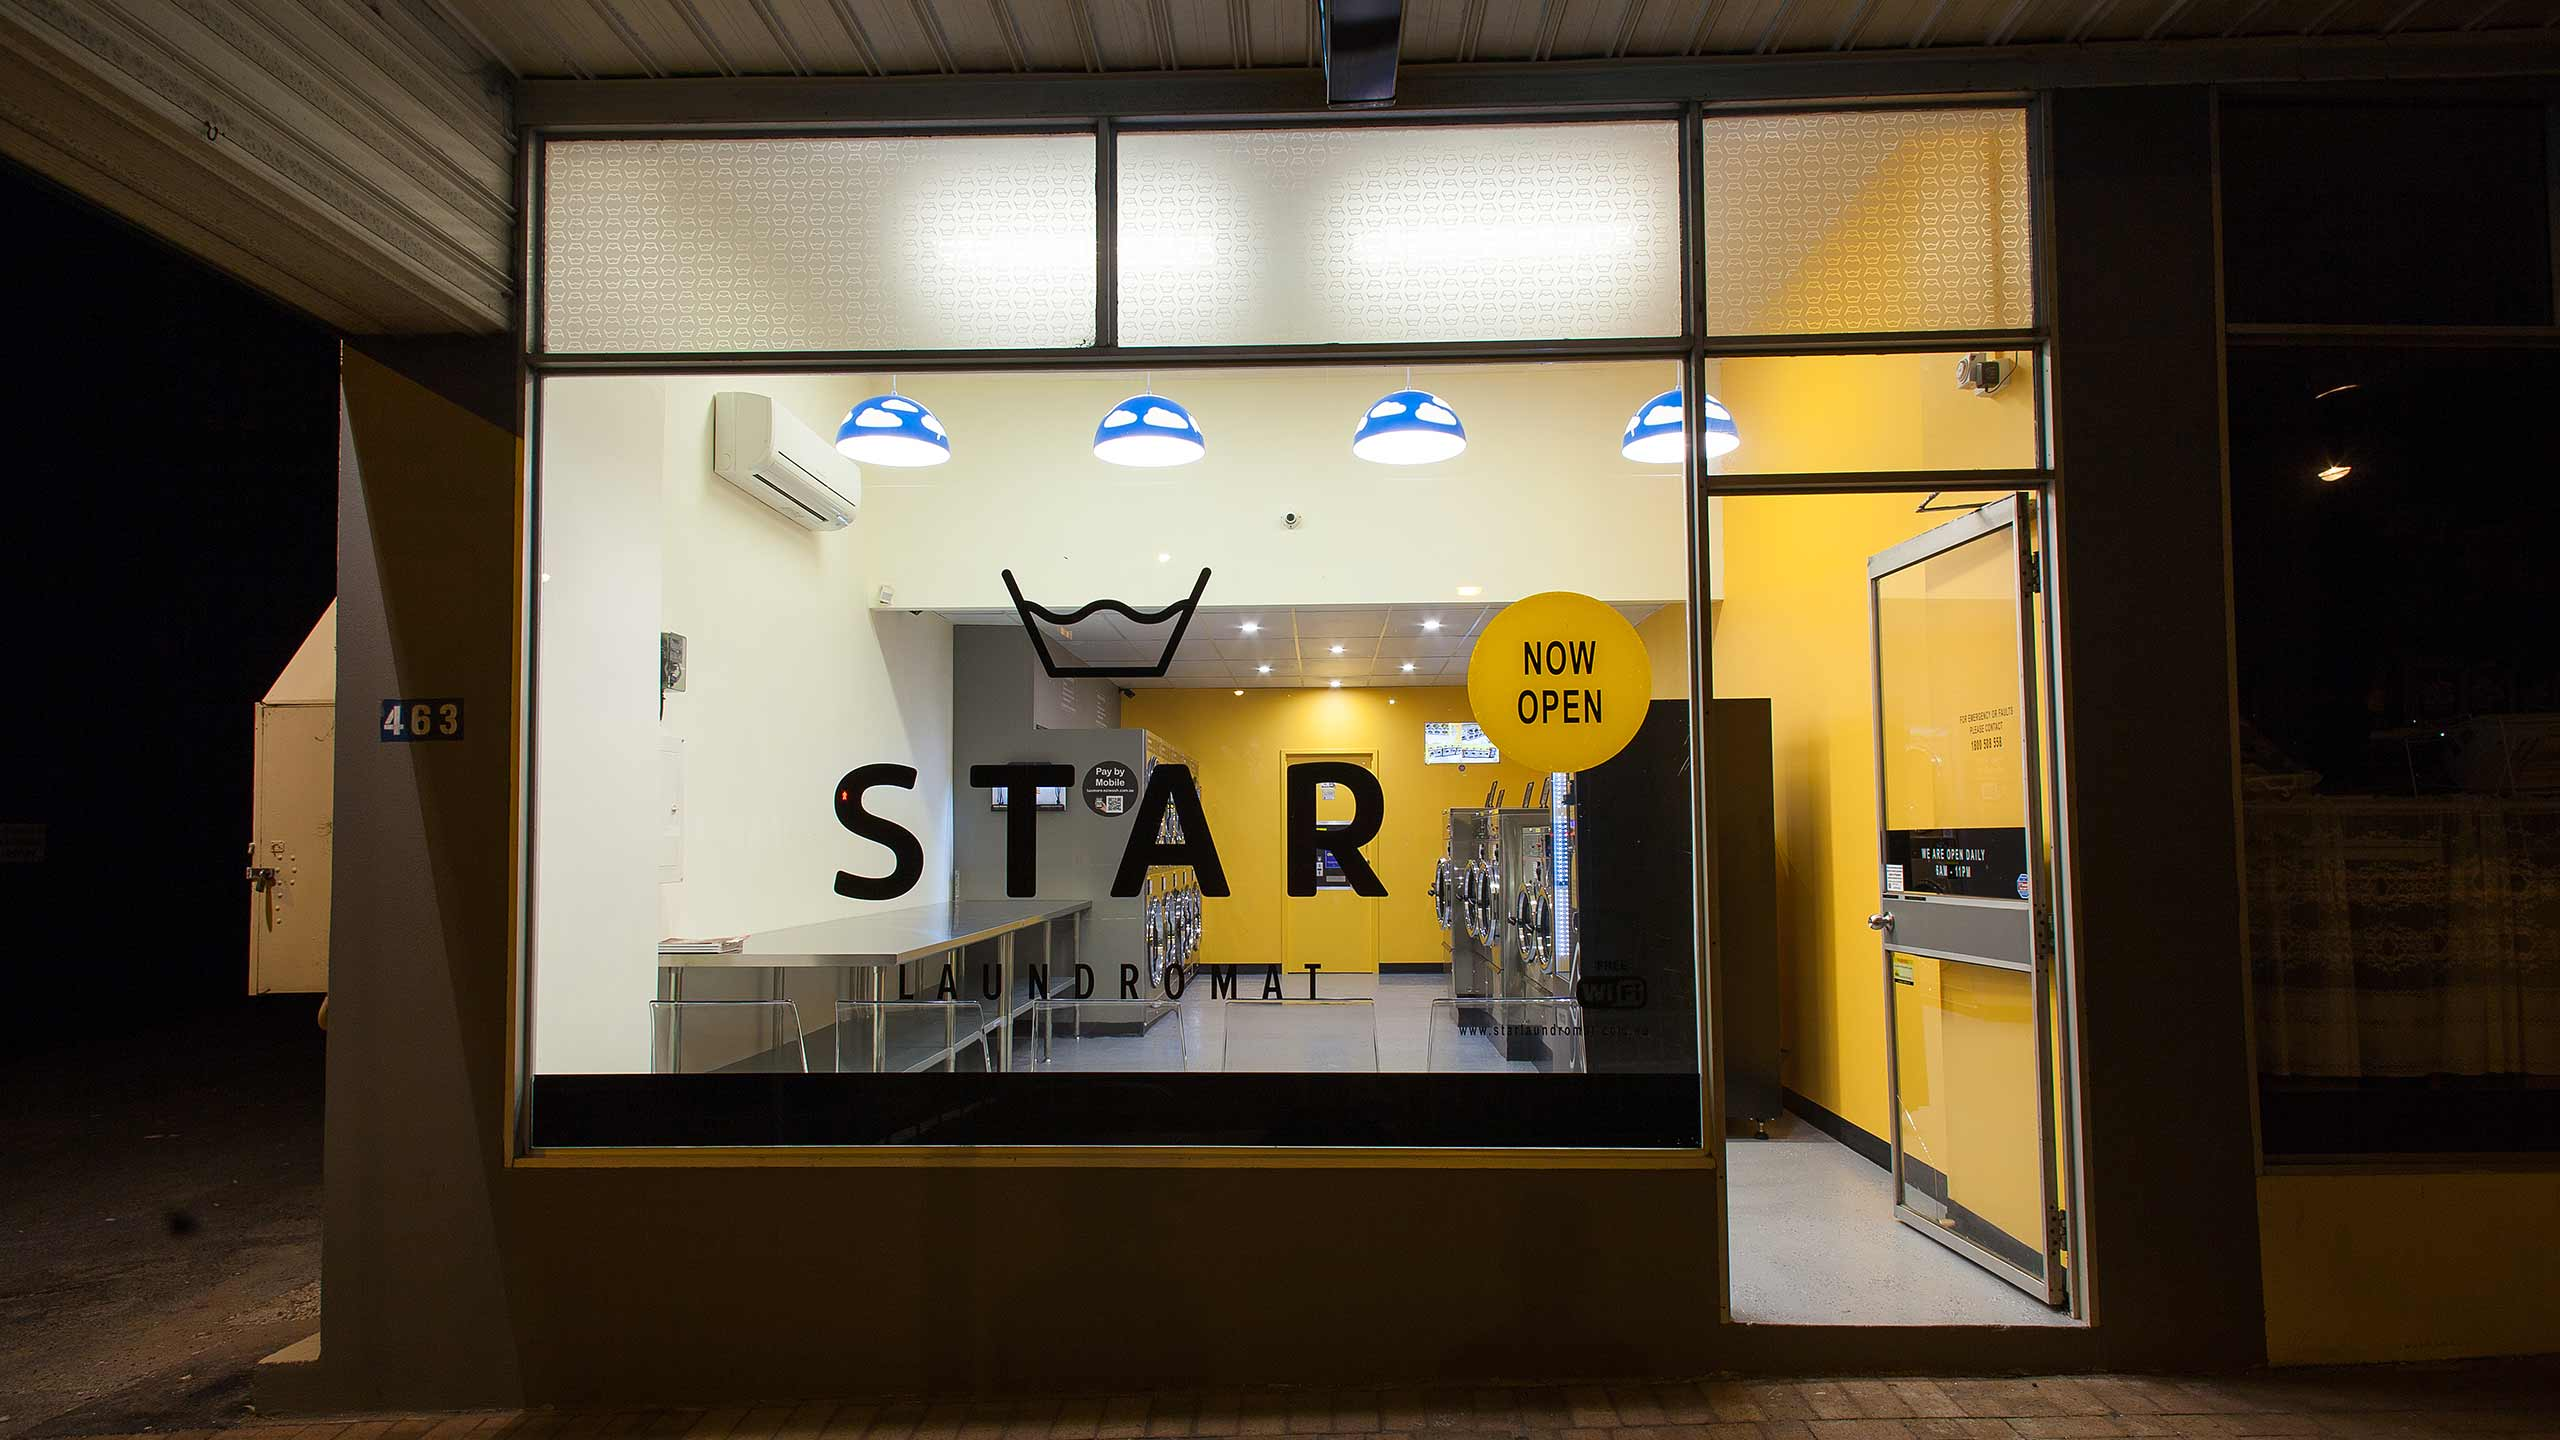 star-laundromat-tusmore-front